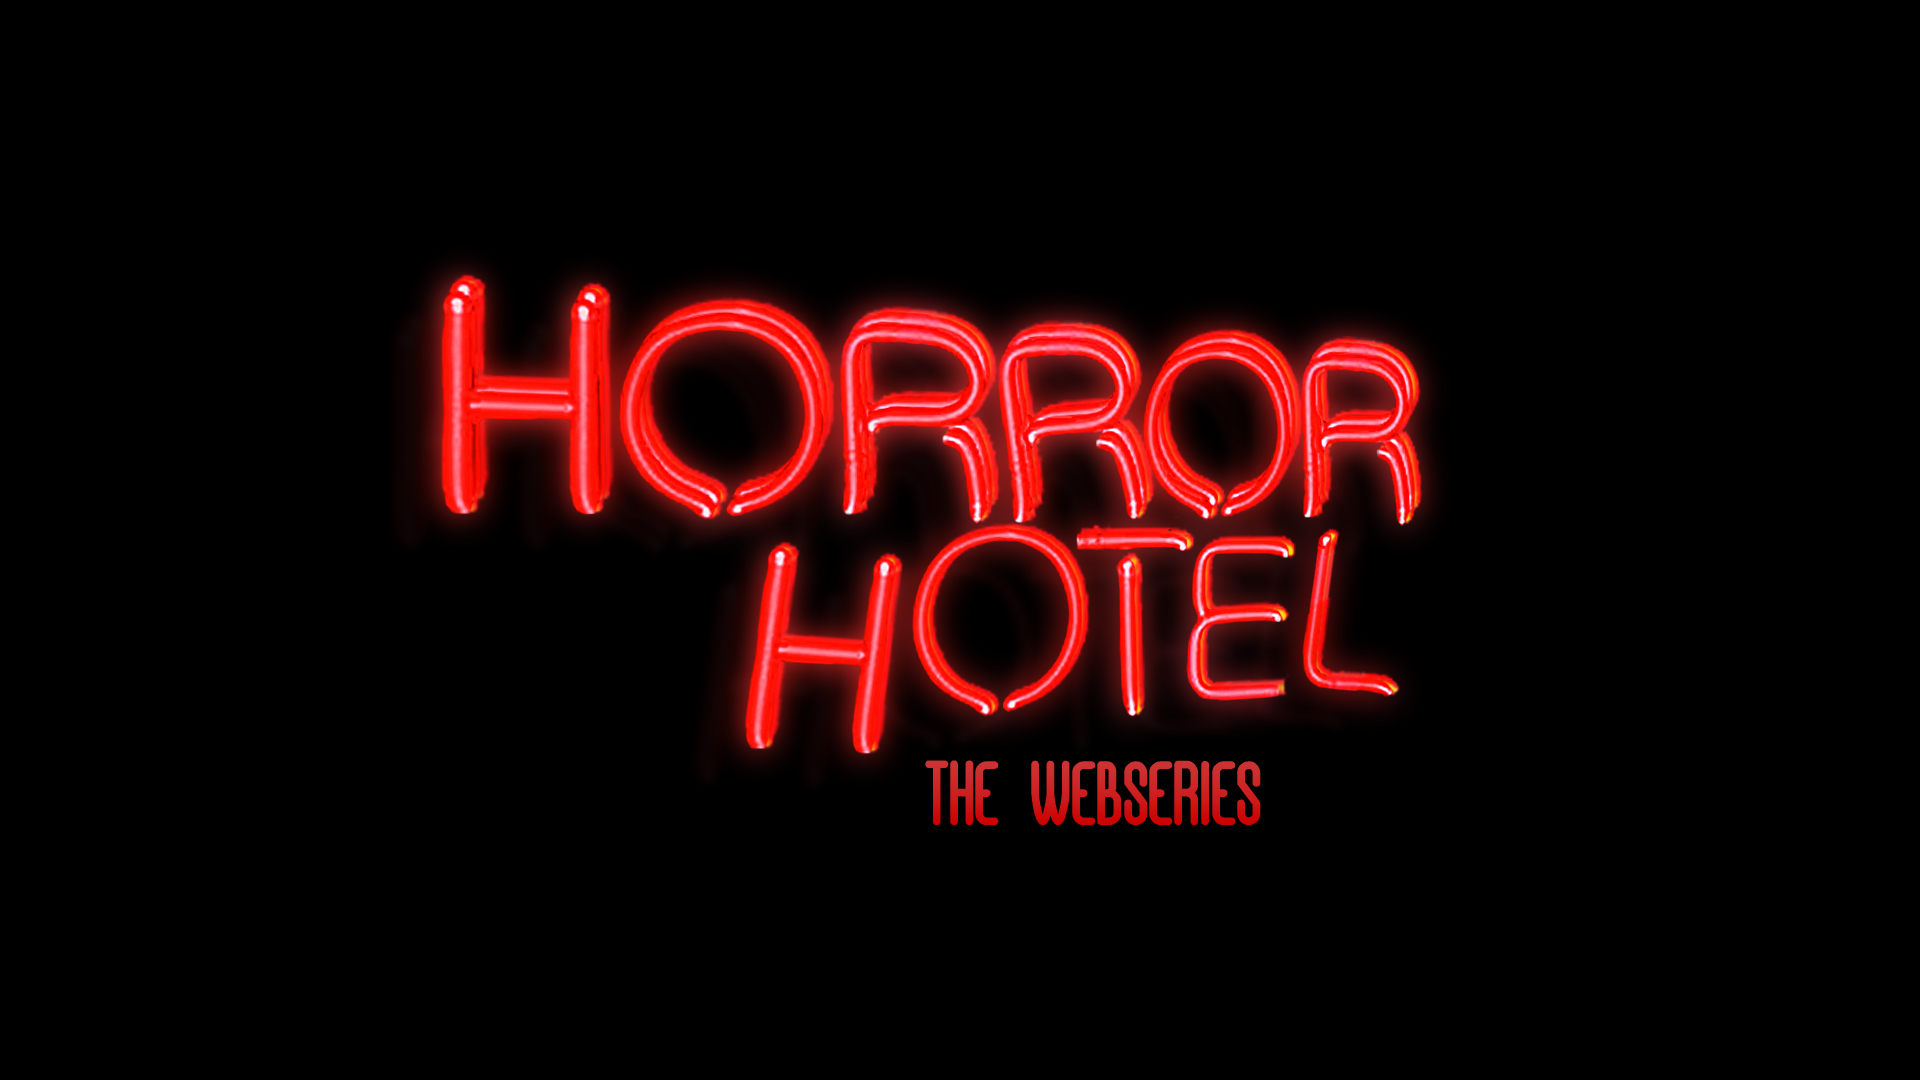 HORROR HOTEL Season 2: Now Streaming On Hulu, Uverse